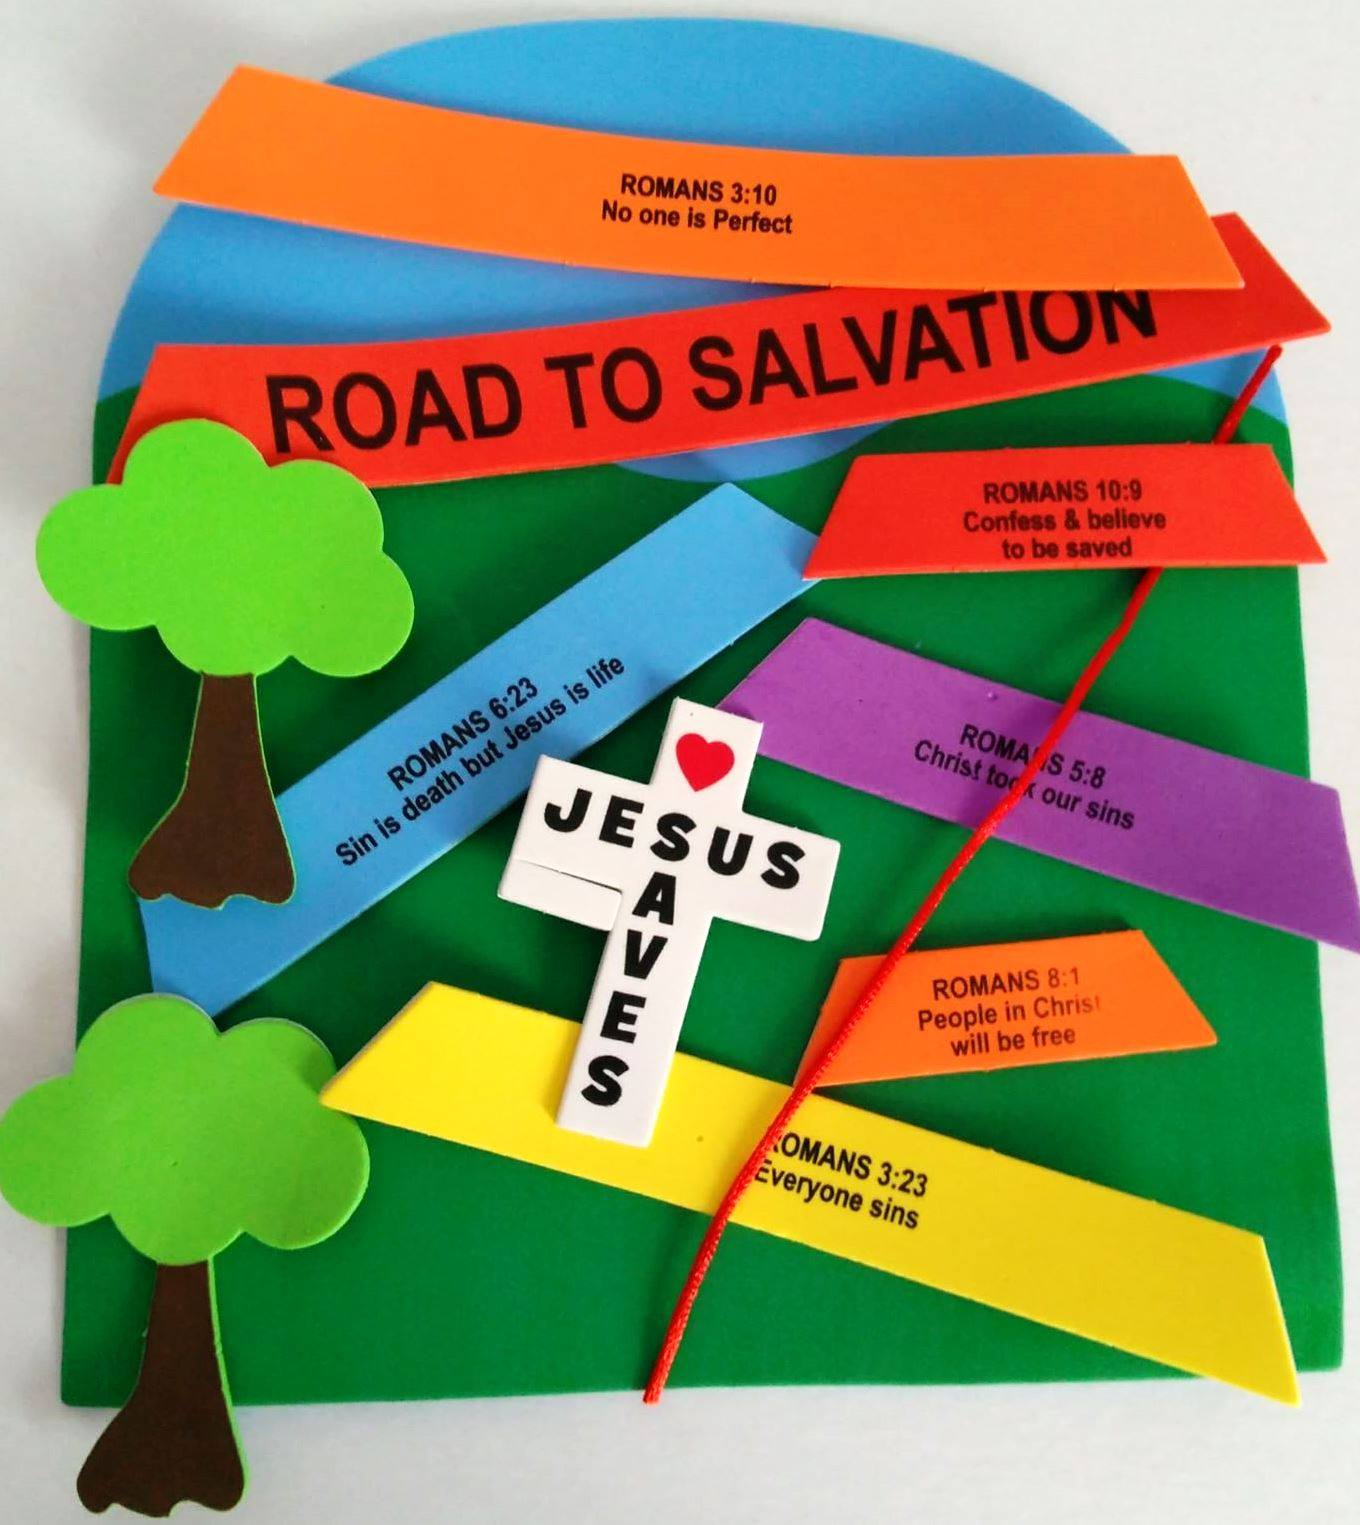 photo relating to Roman Road to Salvation Printable identify Petersham Bible Reserve Tract Depot: Romans Highway Indicator Craft Package